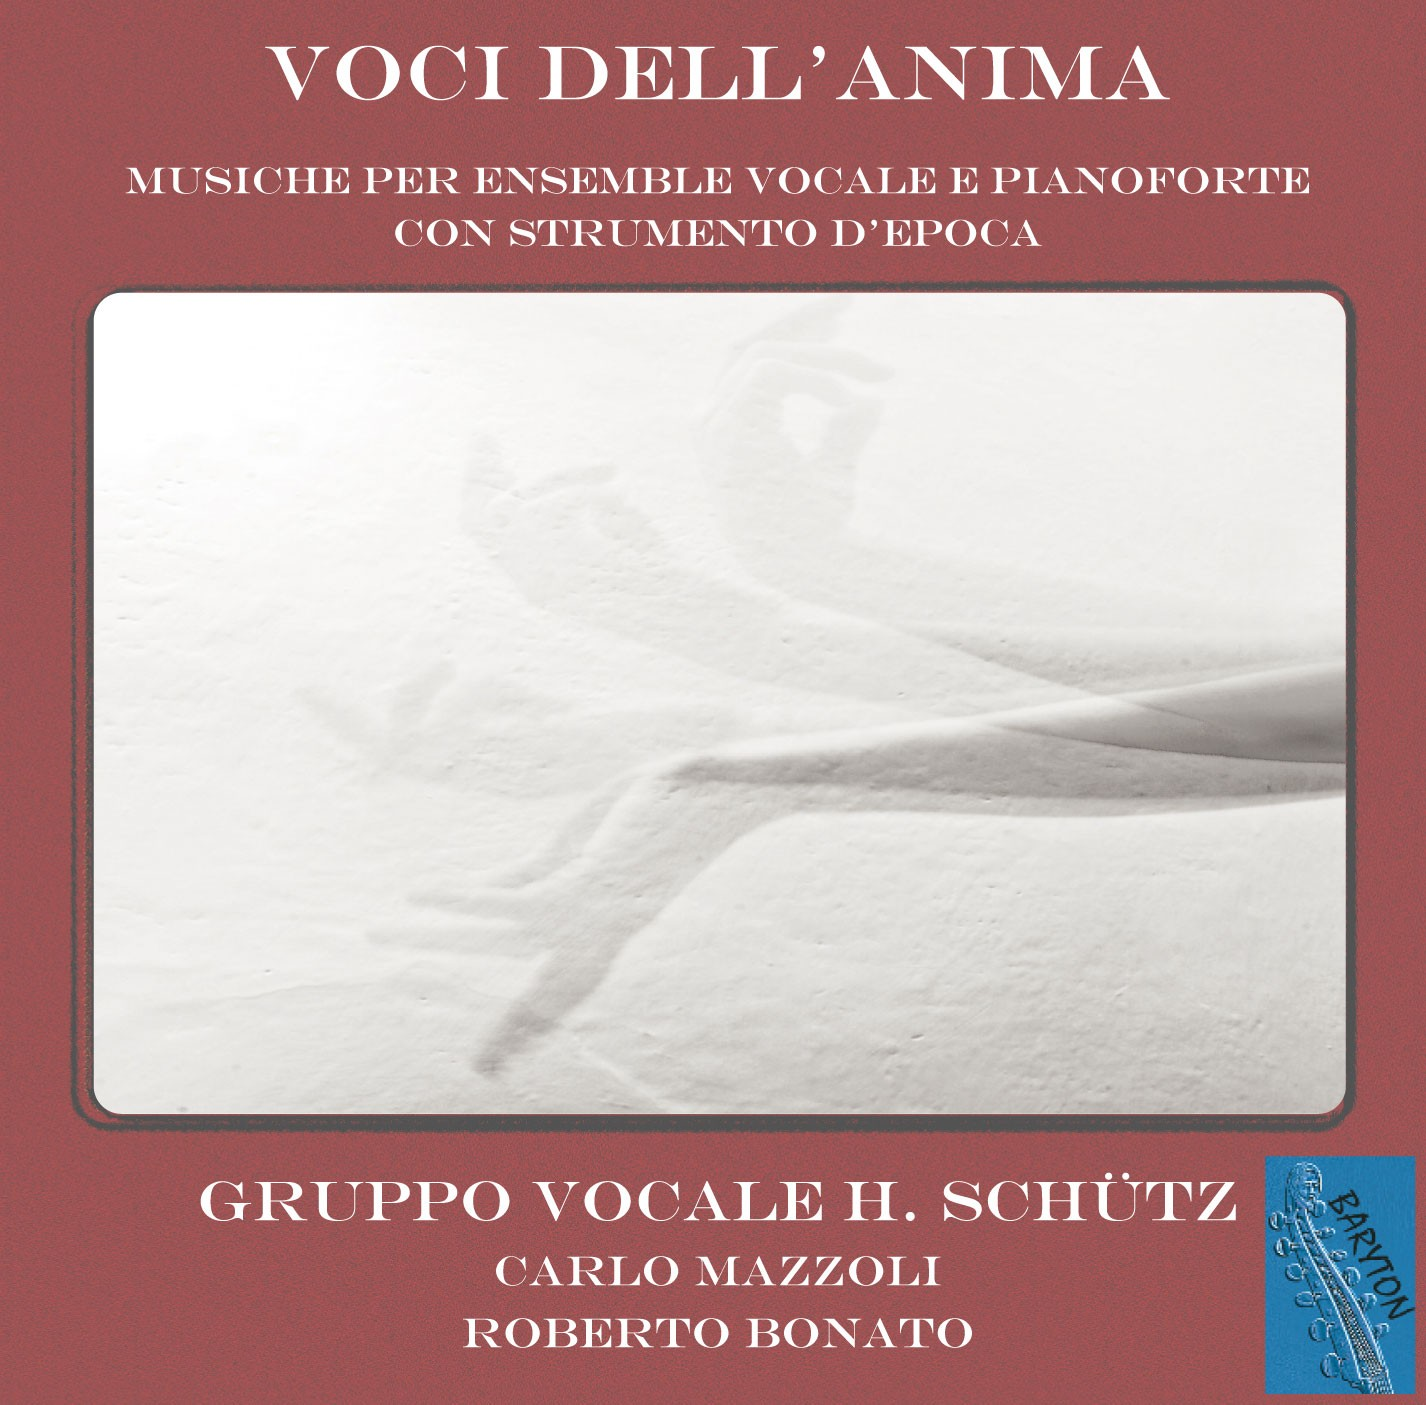 Voci dell'anima